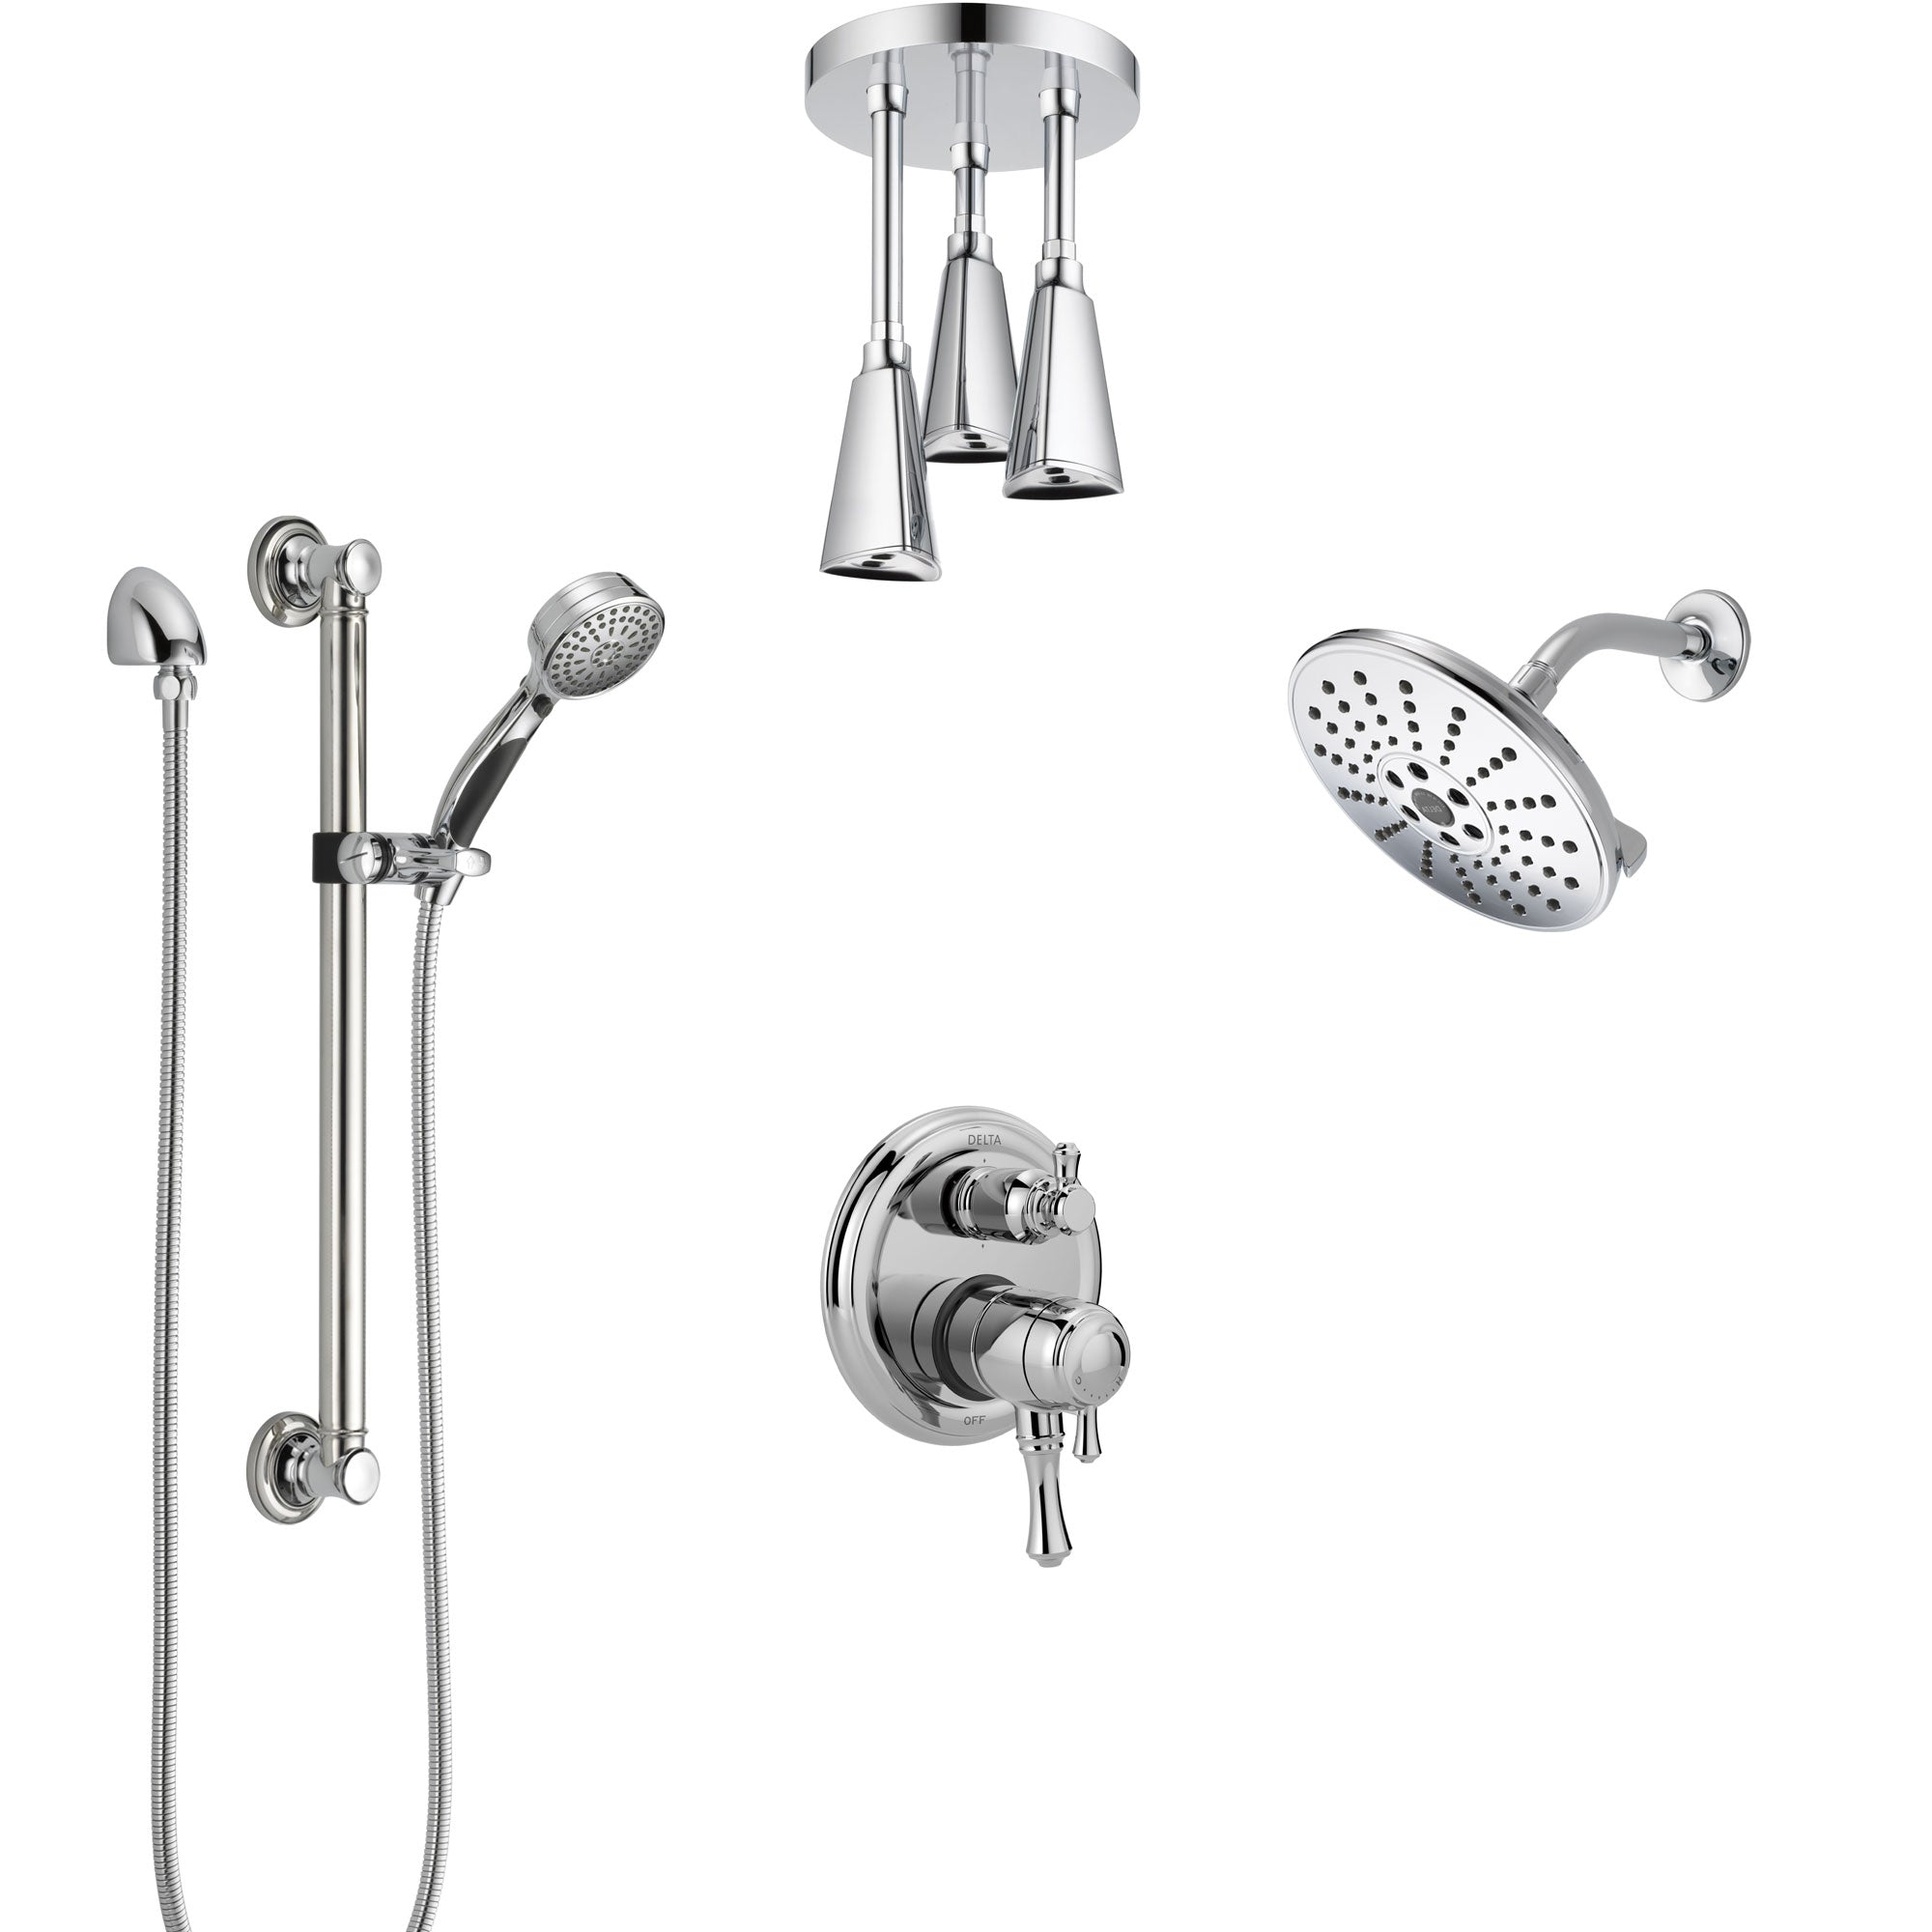 Delta Cassidy Chrome Shower System with Dual Control Handle, Integrated Diverter, Showerhead, Ceiling Showerhead, and Grab Bar Hand Shower SS2799711